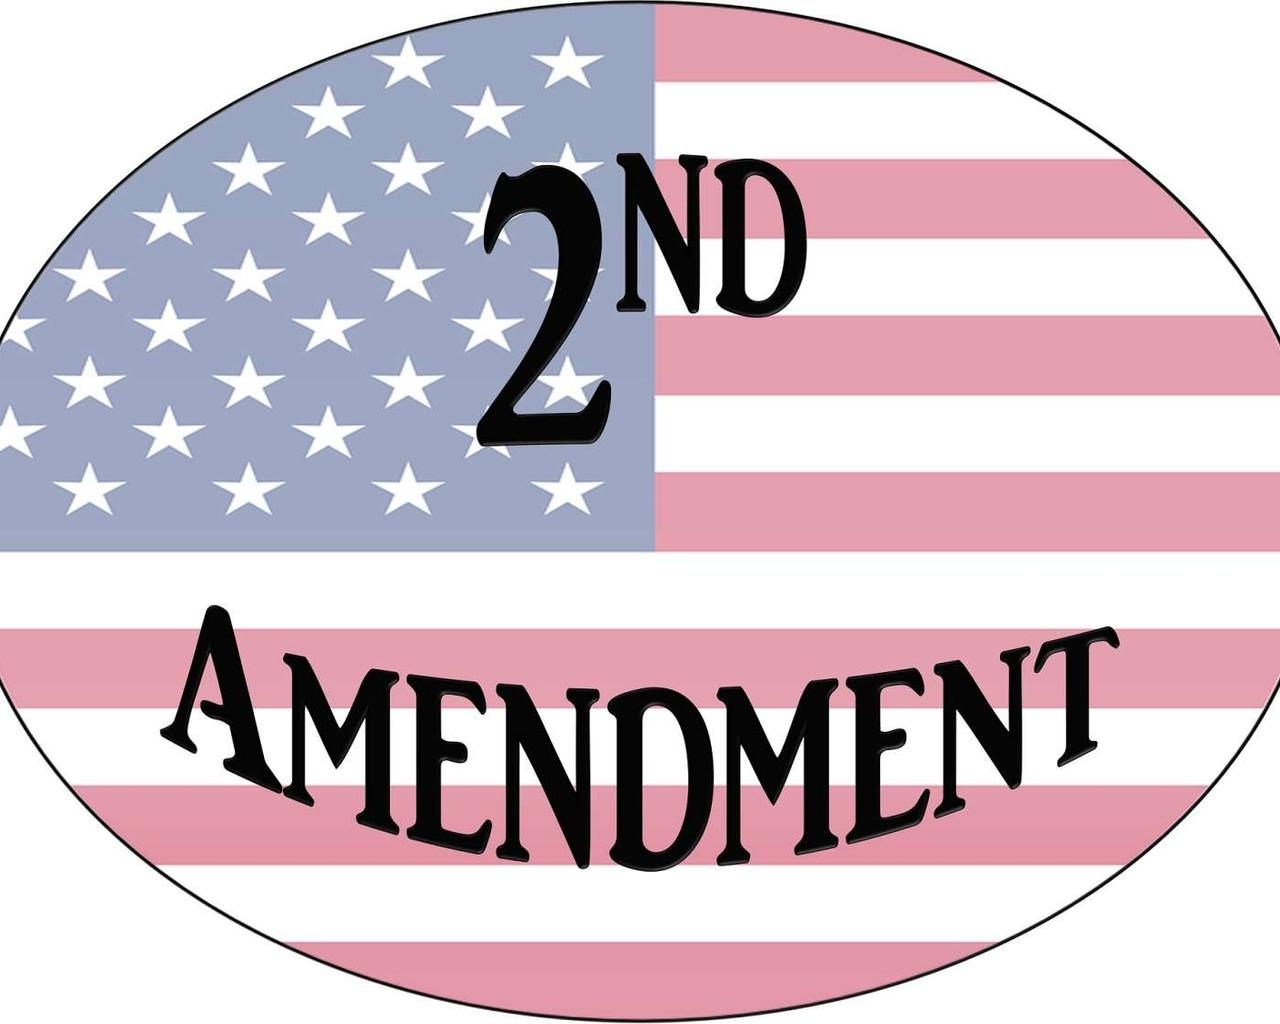 Rally In Virginia On Monday For 2nd Amendment Rights Is A Go—Will Violence Insue?